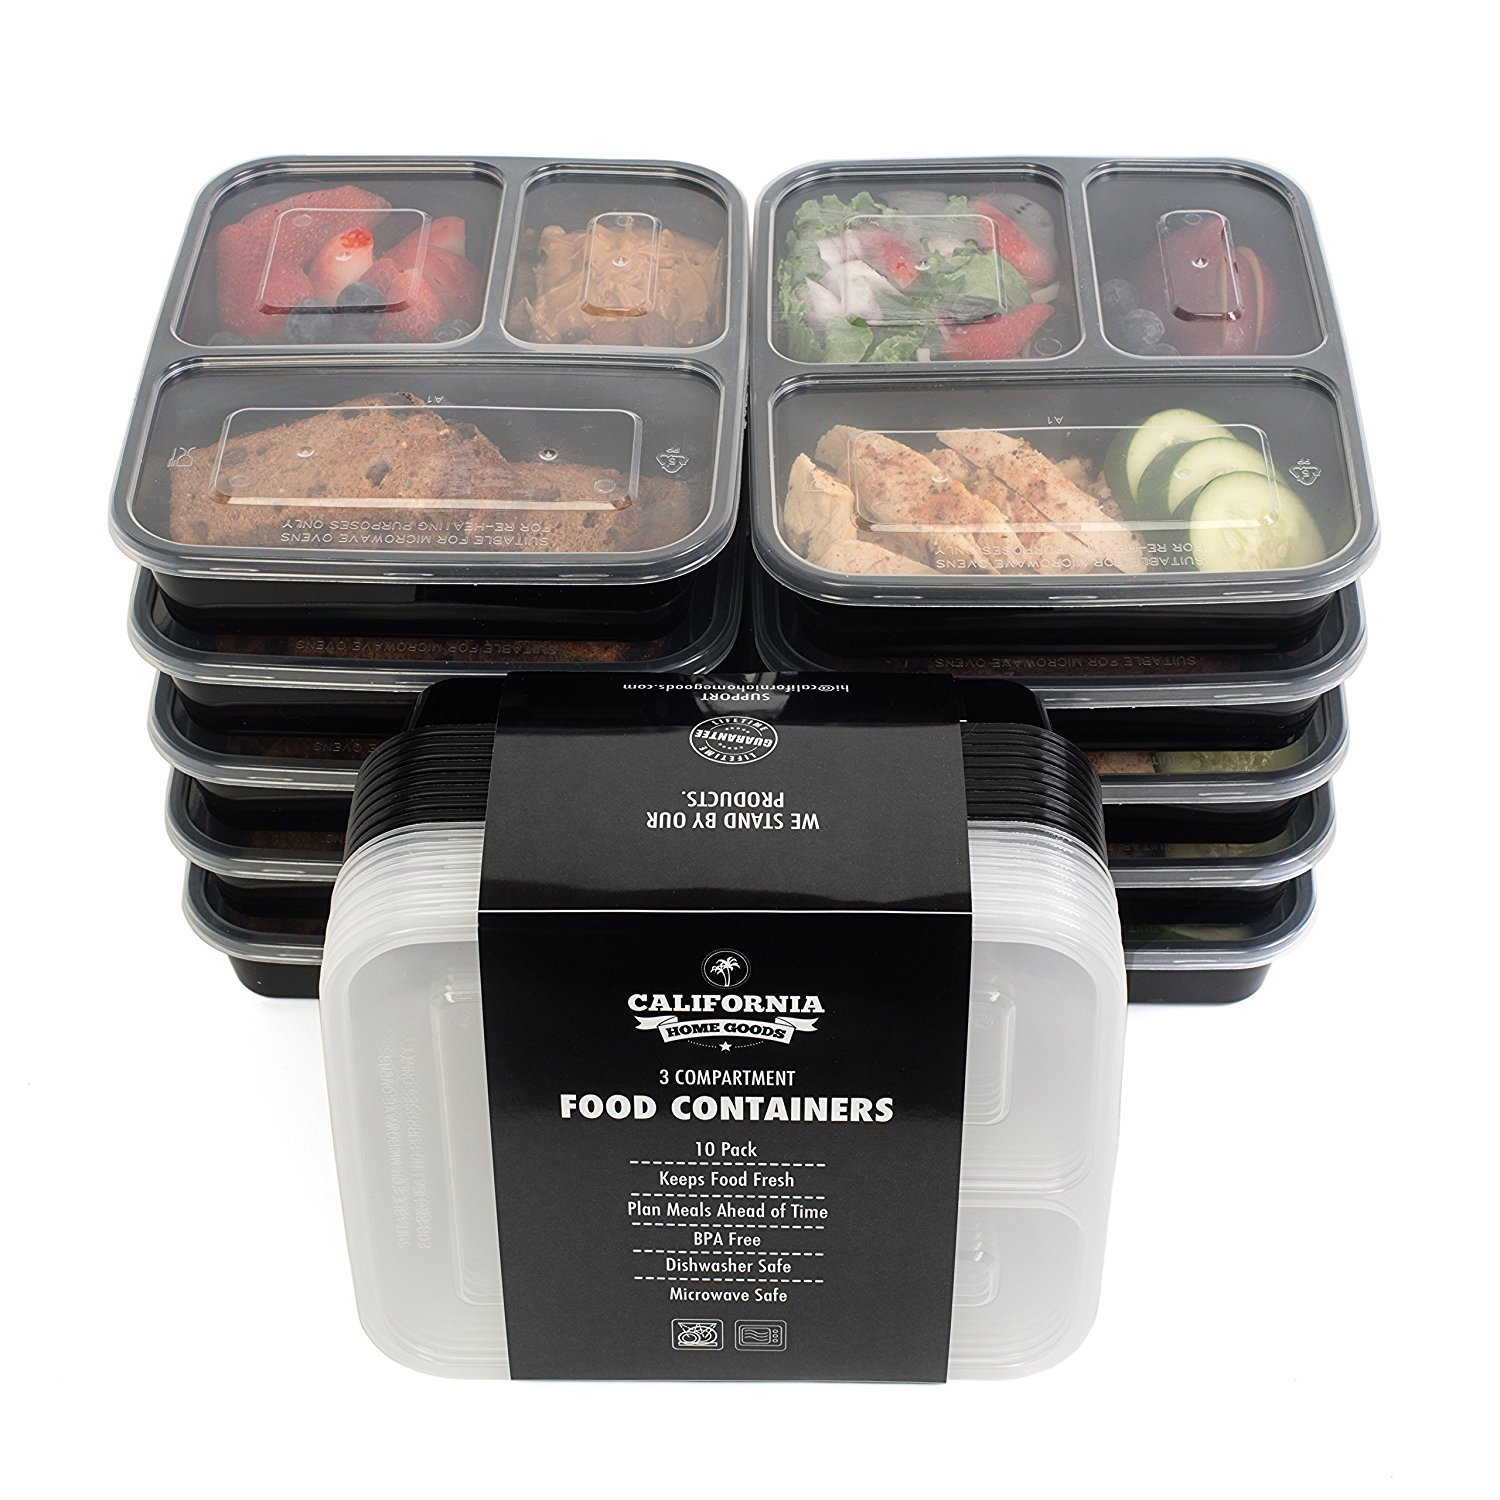 California Home Goods 3 Compartment Bento Reusable Food Storage Containers with Lids, Set of 10, For Meal Prep, Back to School, 21 Day Fix